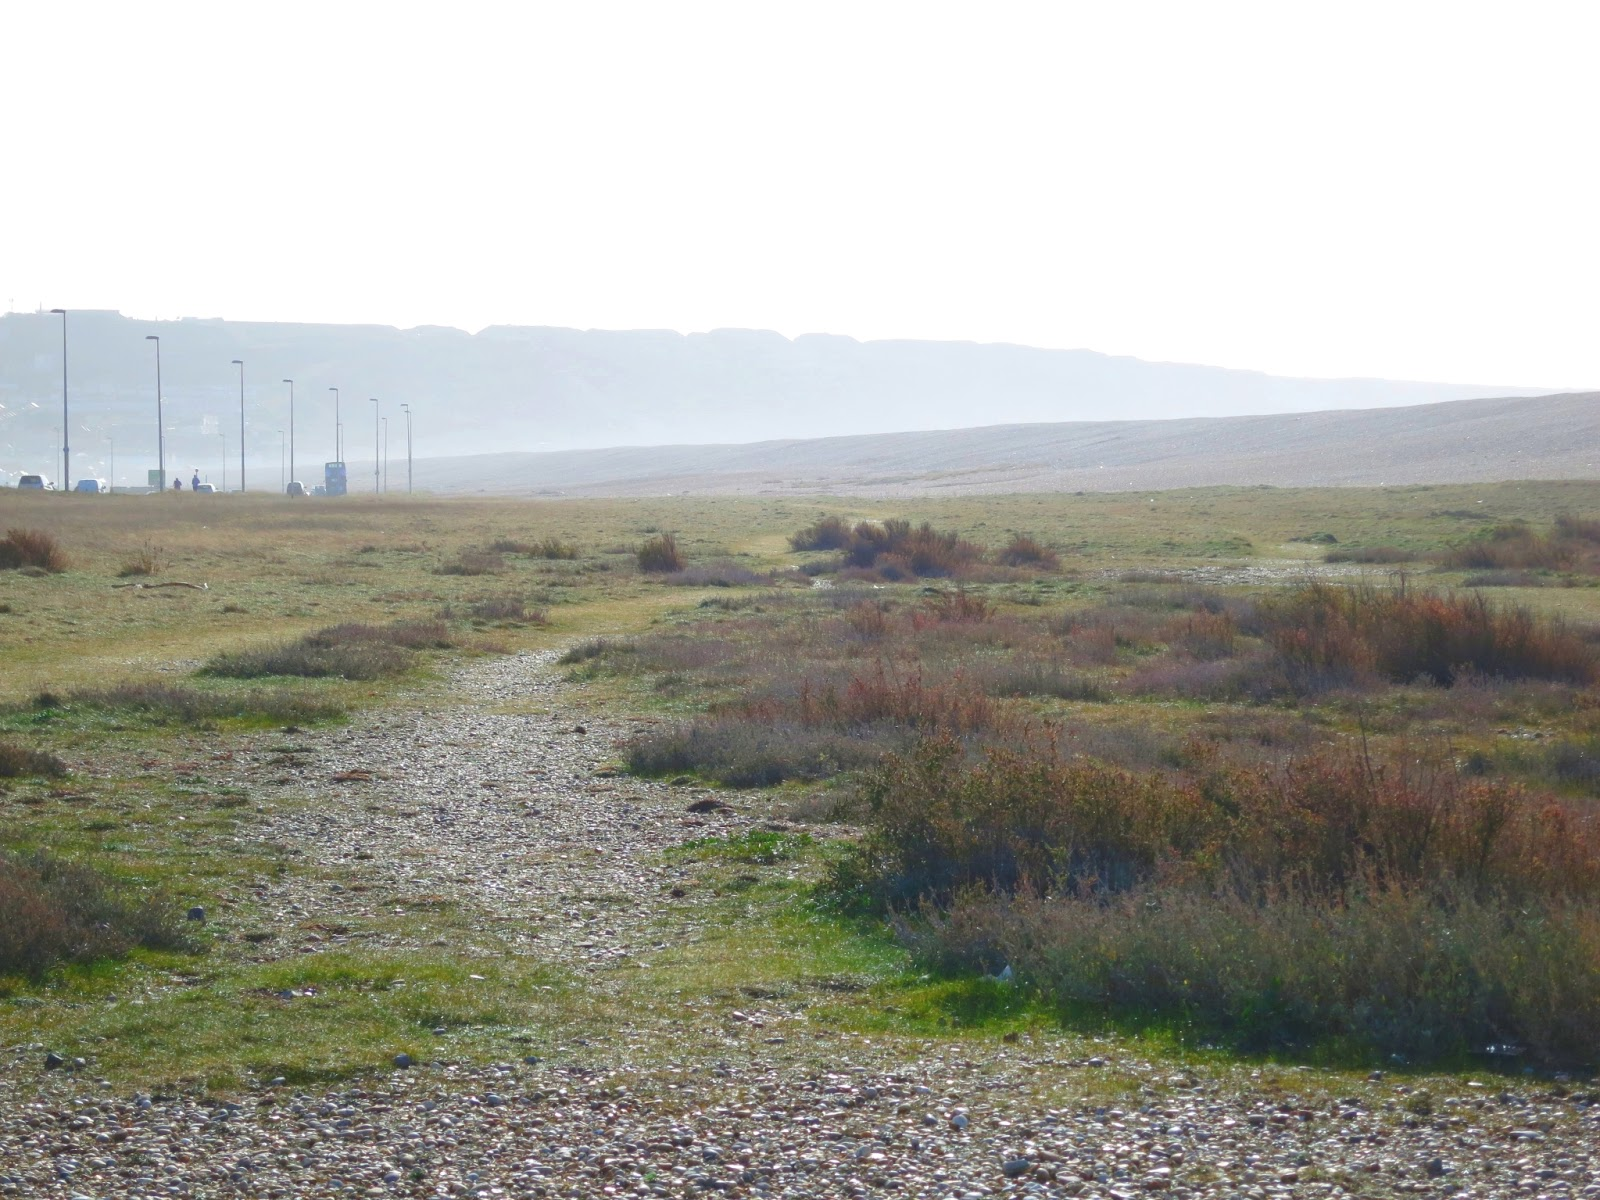 Path between Chesil Beach and the causeway to Portland. March 1st 2015.